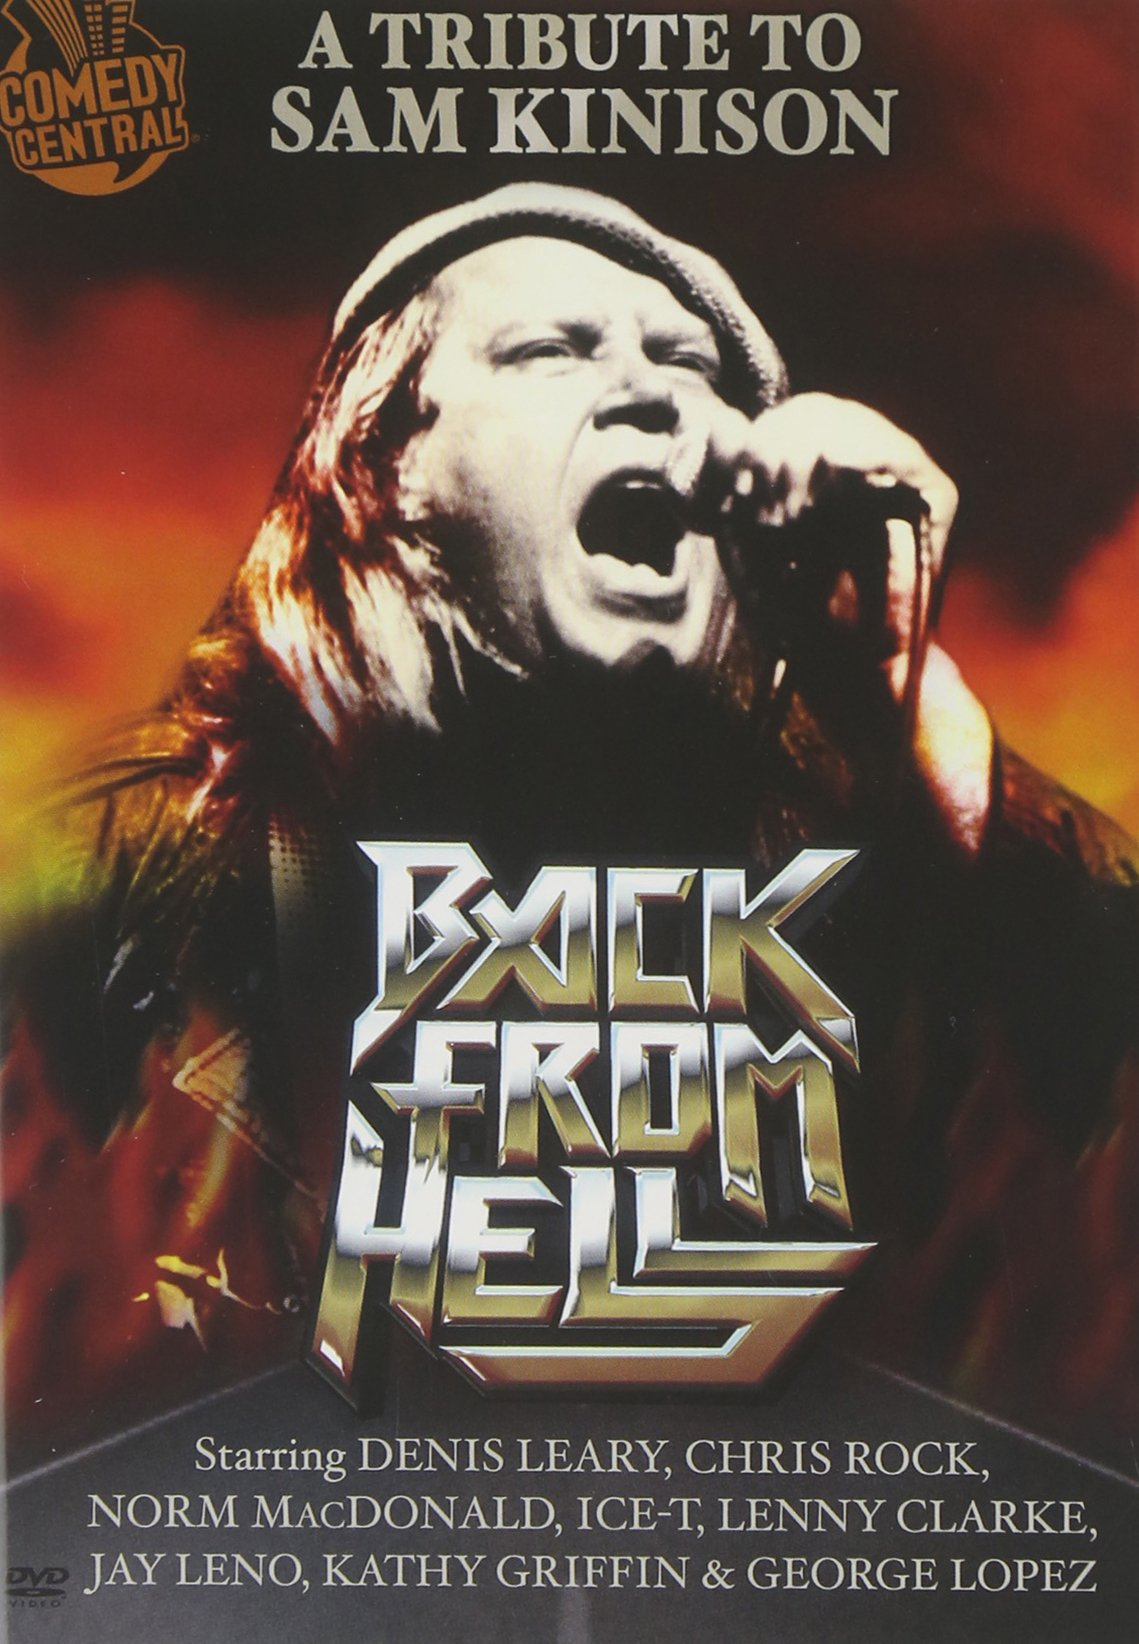 DVD : Jay Leno - Back From Hell: A Tribute To Sam Kinison (Widescreen, Dolby, AC-3)